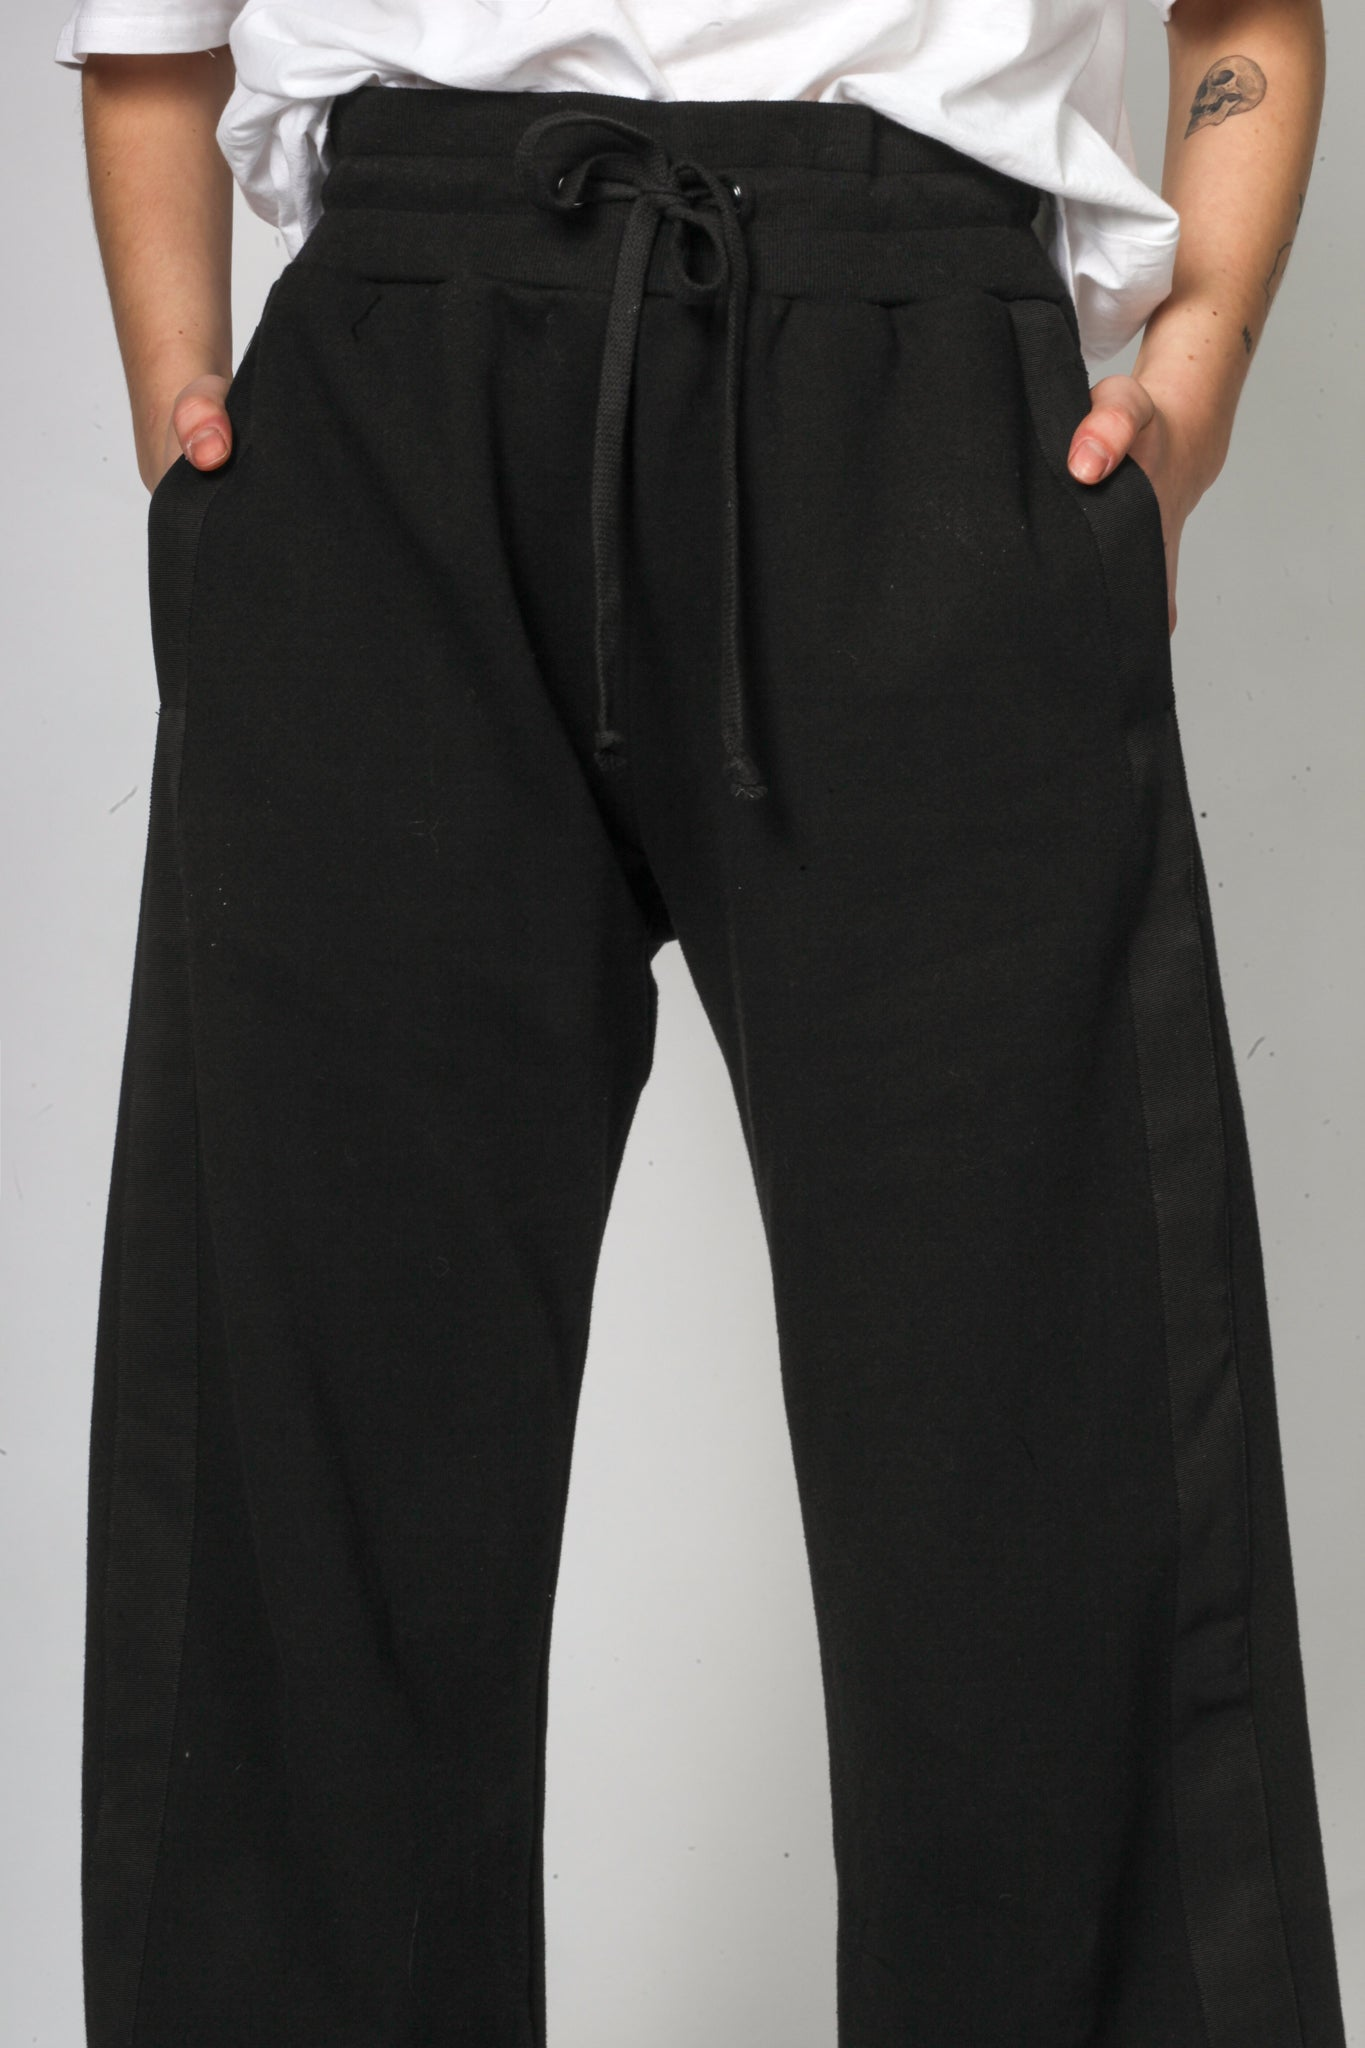 Bag-of-Bones Sweatpant